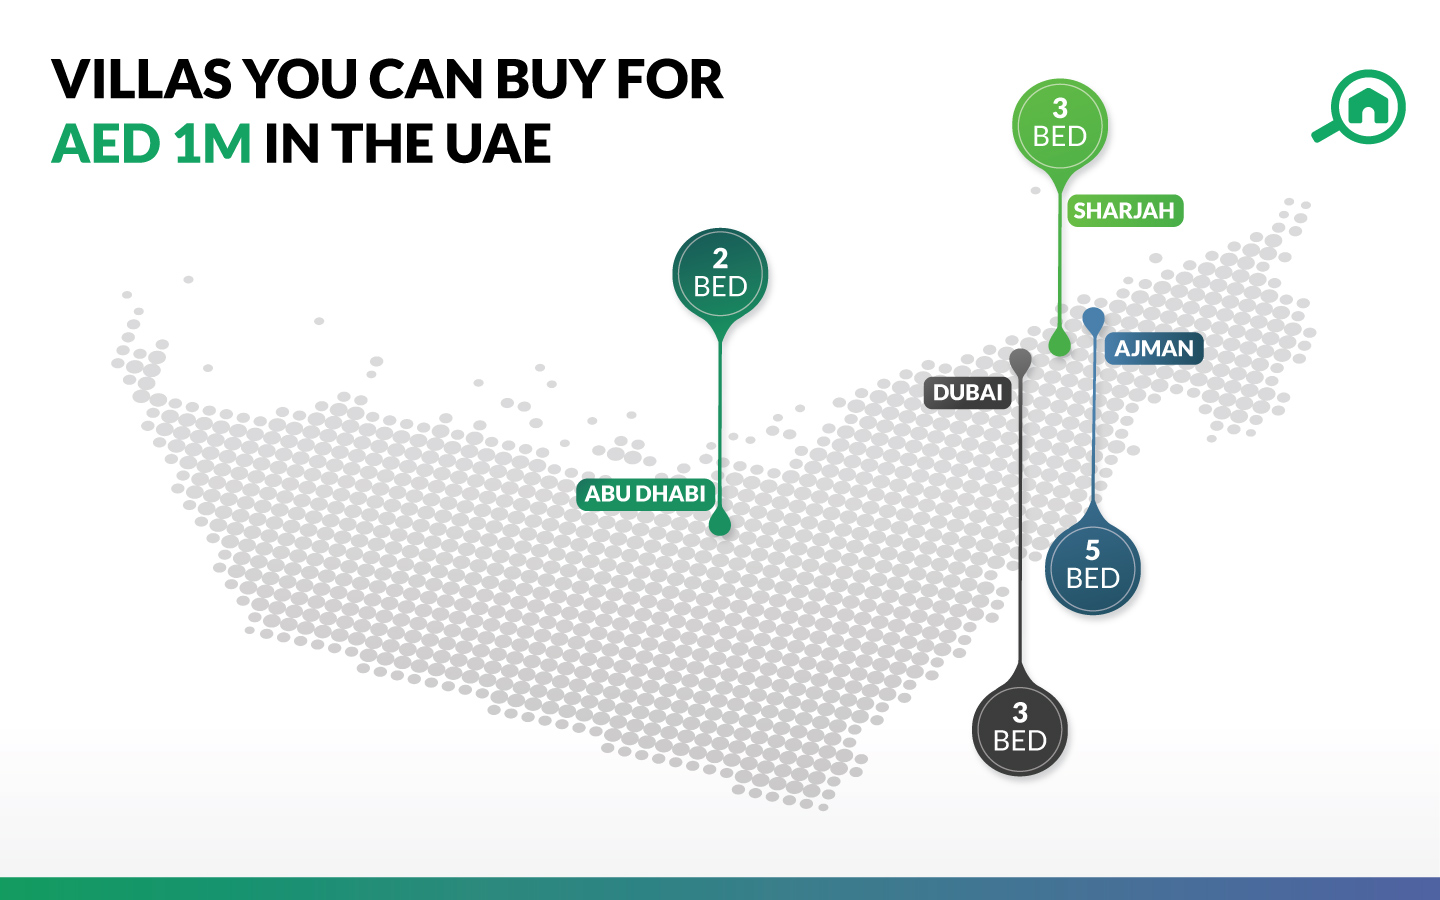 Villas for sale in the UAE for AED 1M